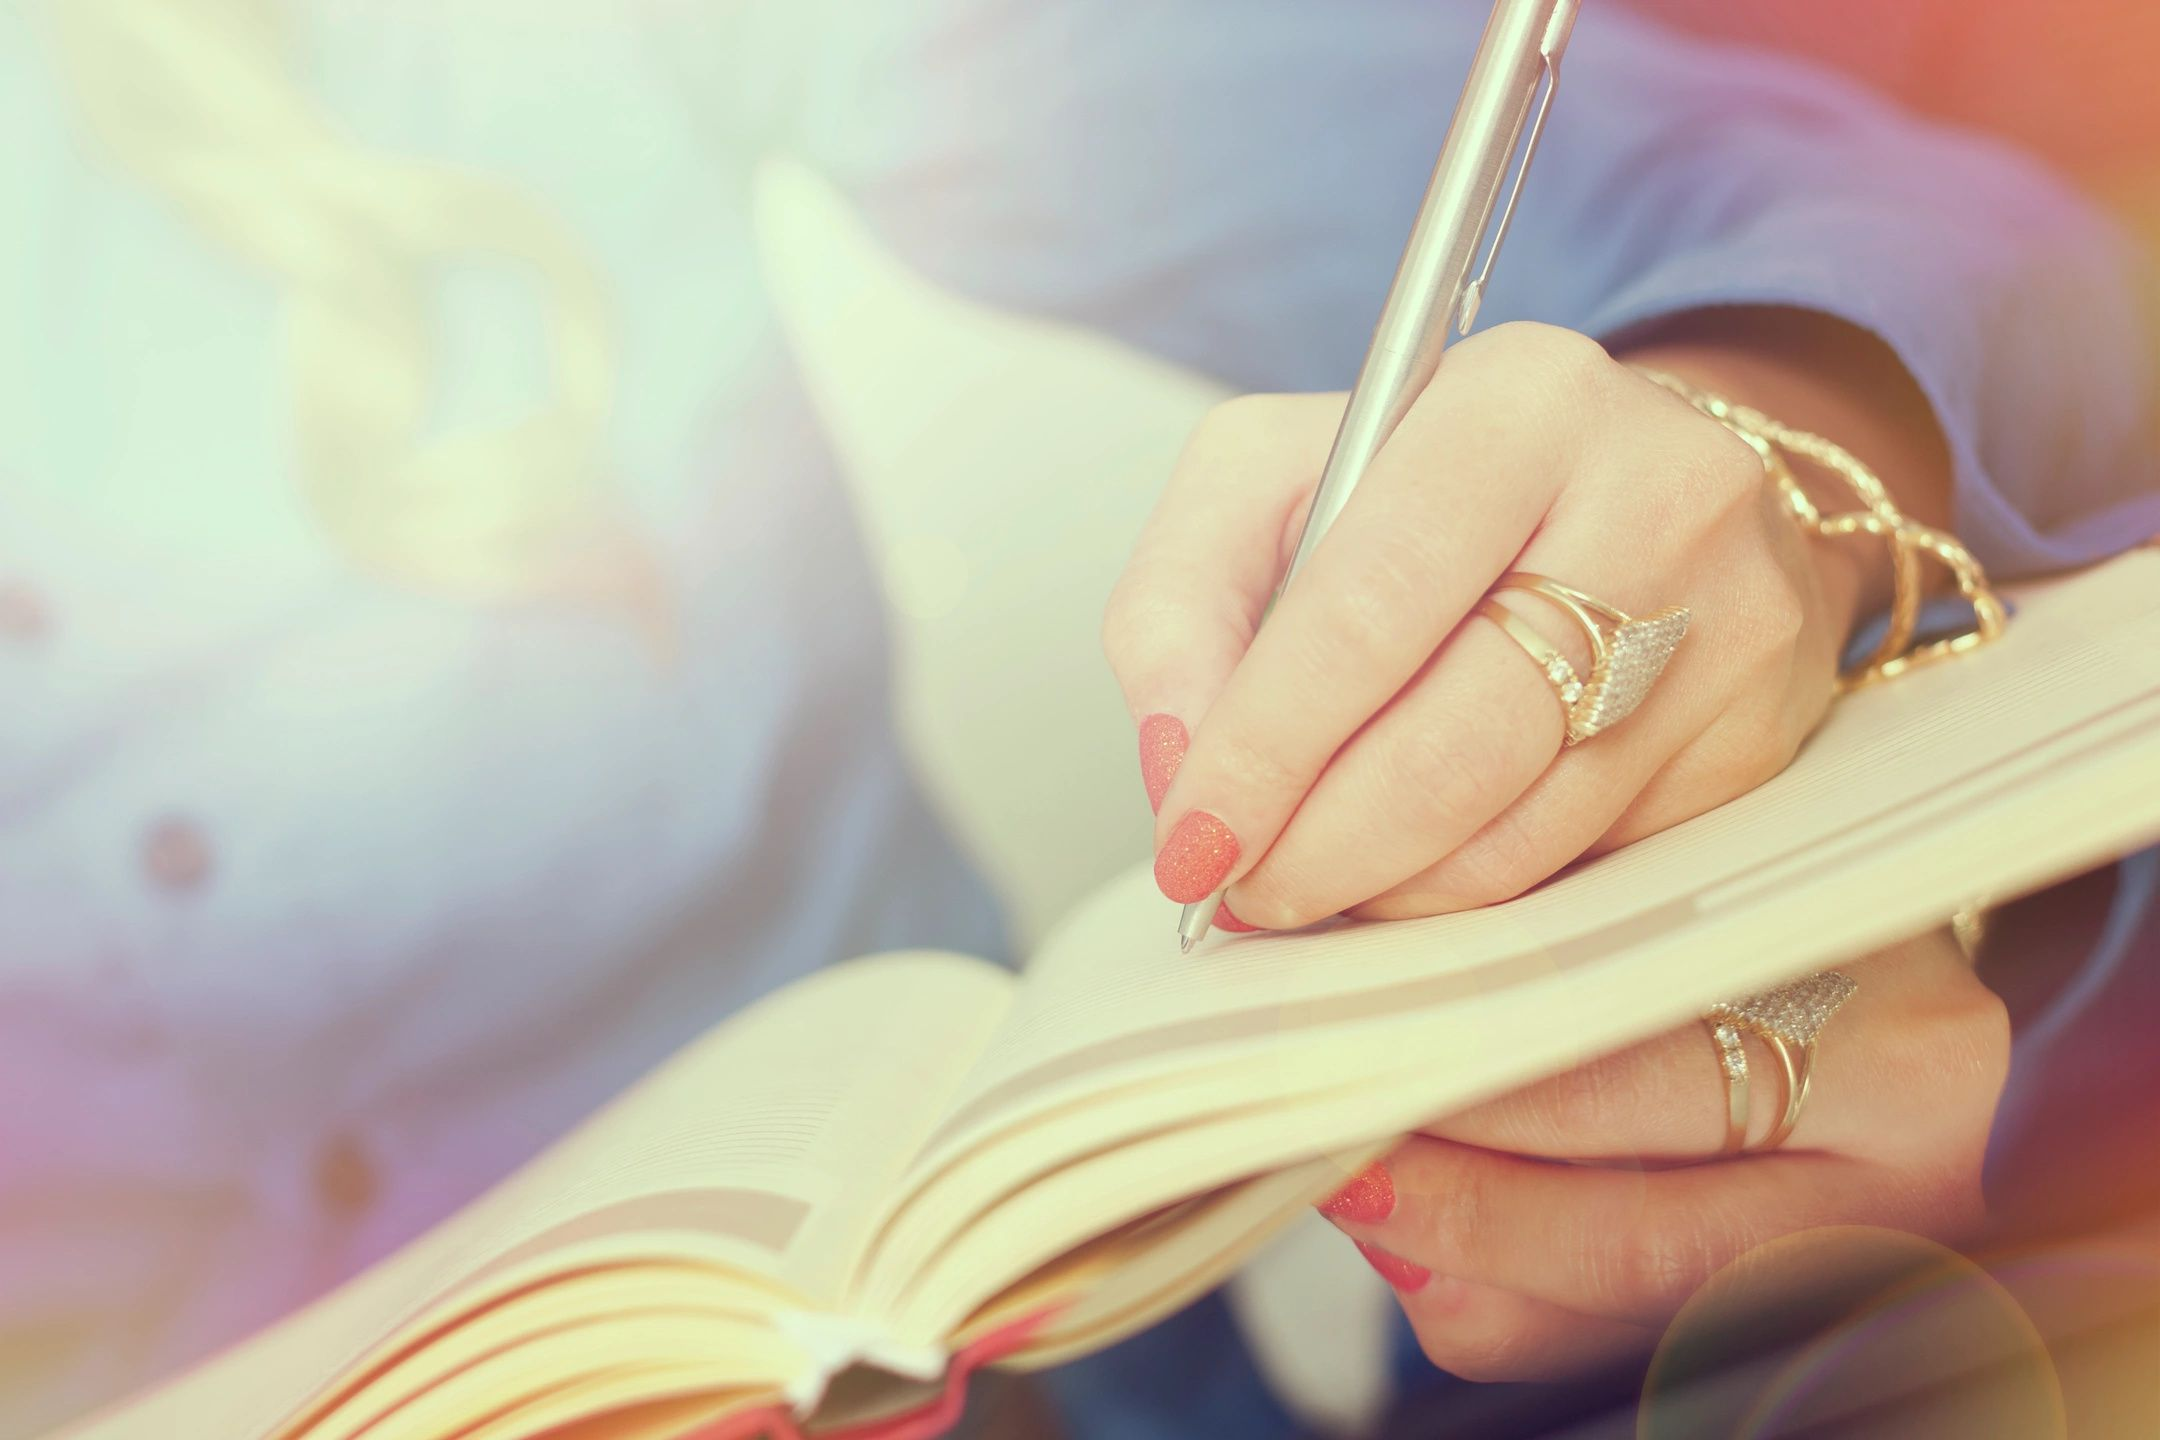 Reading her diary: the financial habits of working women